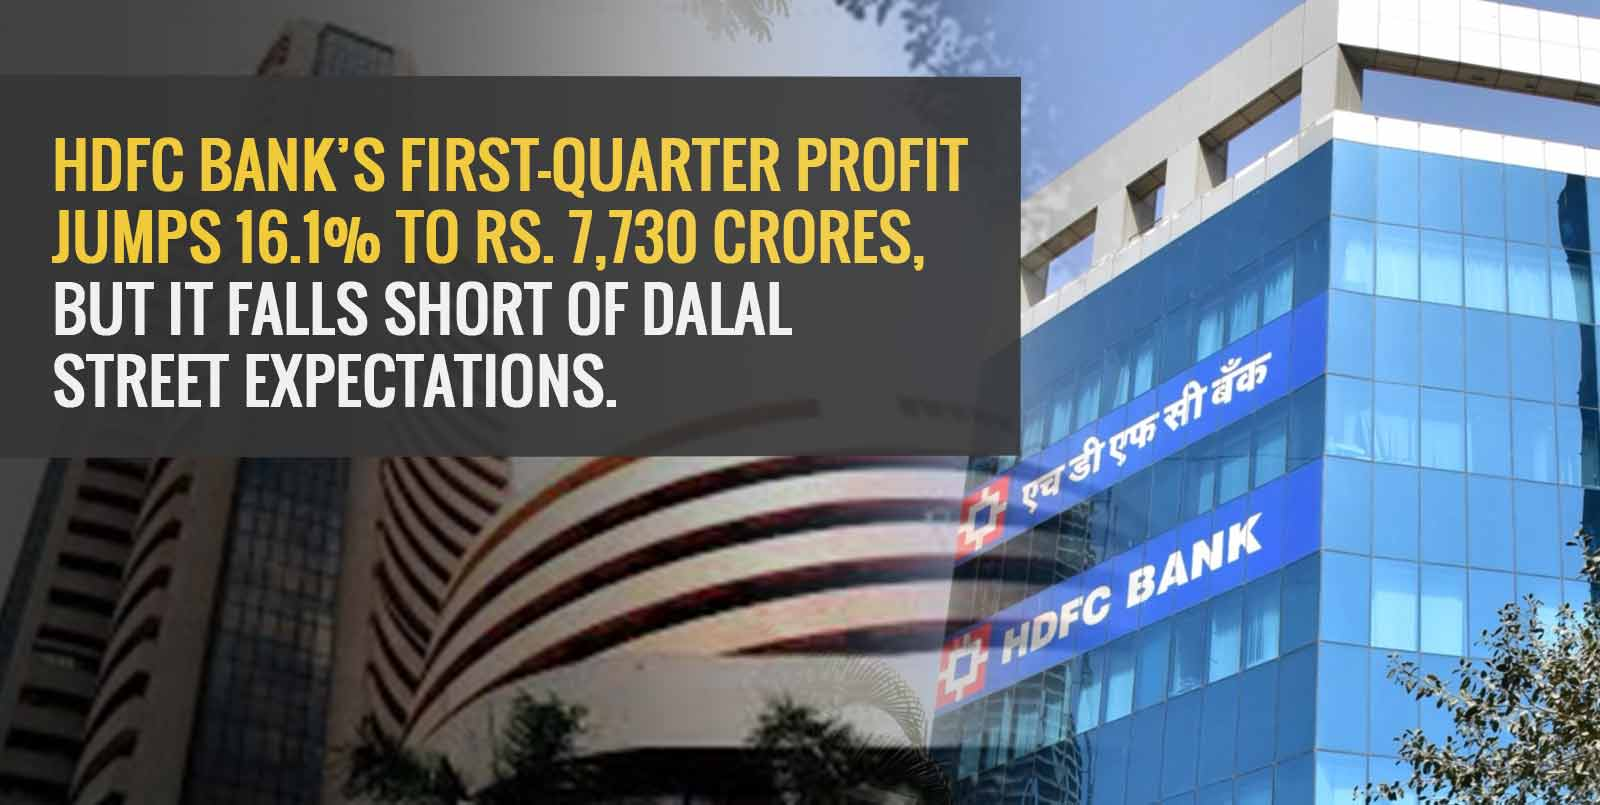 HDFC Bank's first-quarter profit jumps 16.1% to Rs. 7,730 crores, but it falls short of Dalal Street expectations